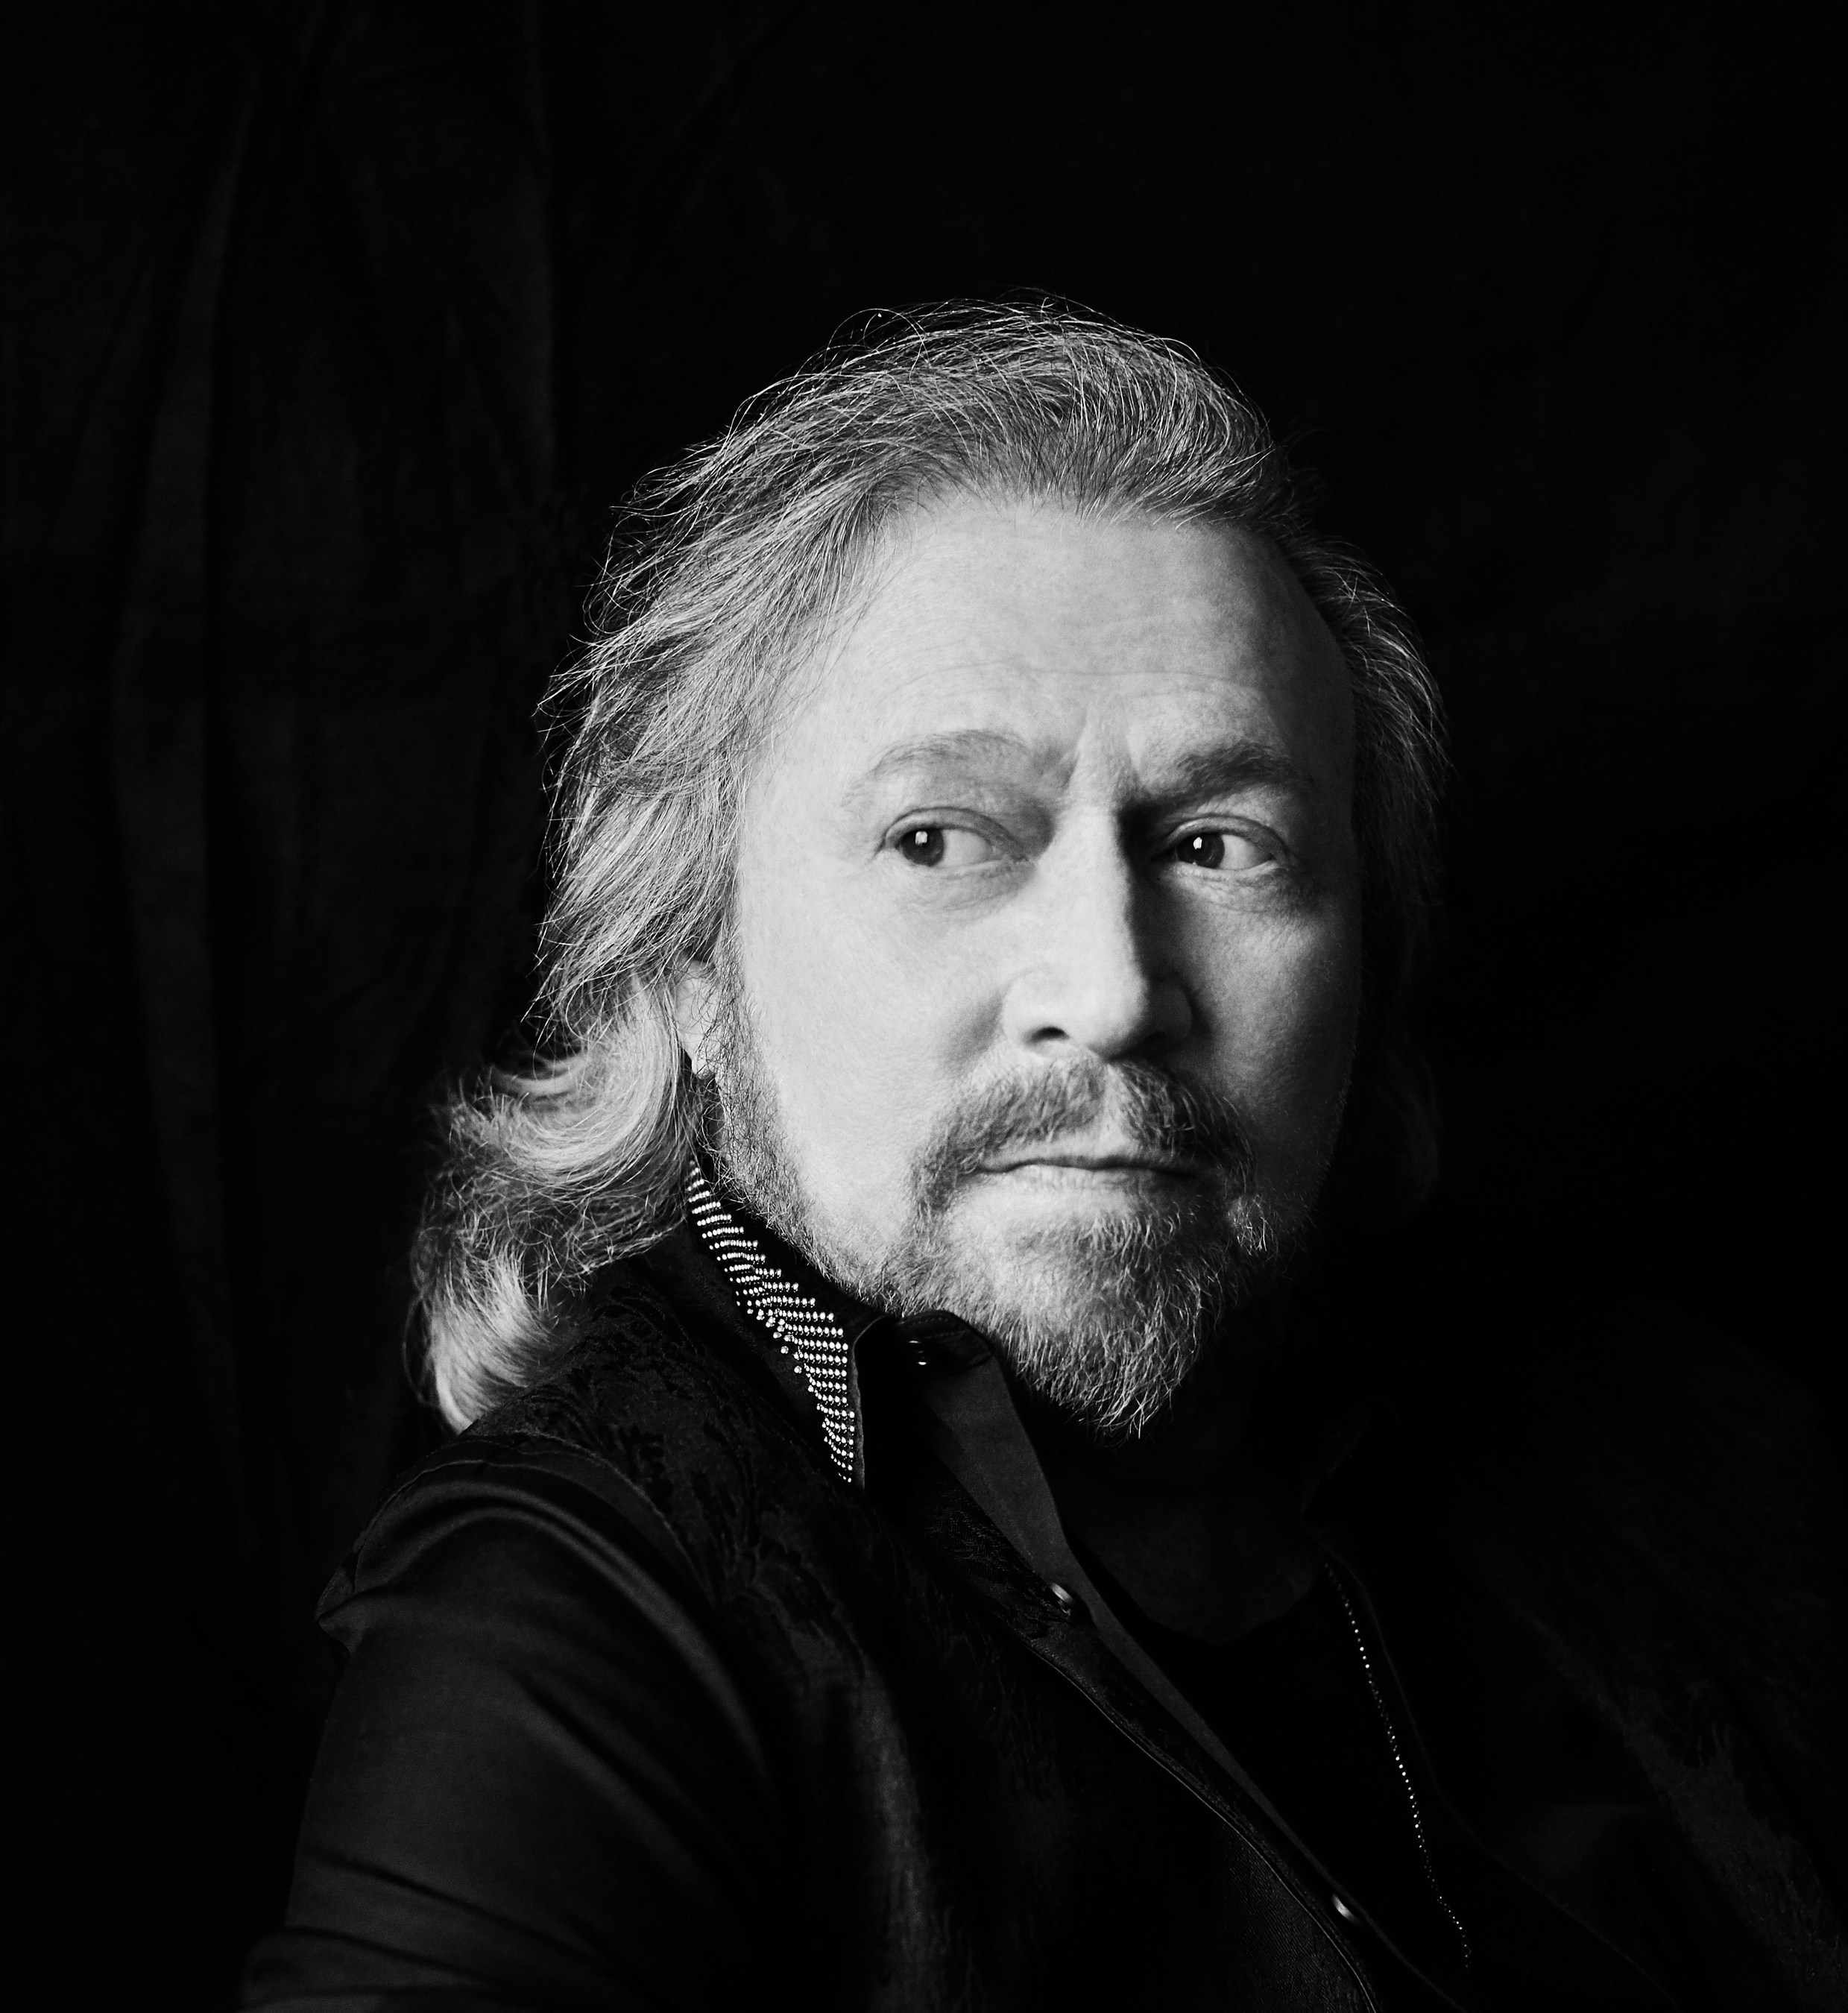 LEGENDARY SINGER/SONGWRITER/PRODUCER BARRY GIBB SIGNS TO COLUMBIA RECORDS SET TO RELEASE HIS FIRST SOLO ALBUM INVOLVING NEW MATERIAL  'IN THE NOW' DUE OUT ON COLUMBIA RECORDS THIS FALL